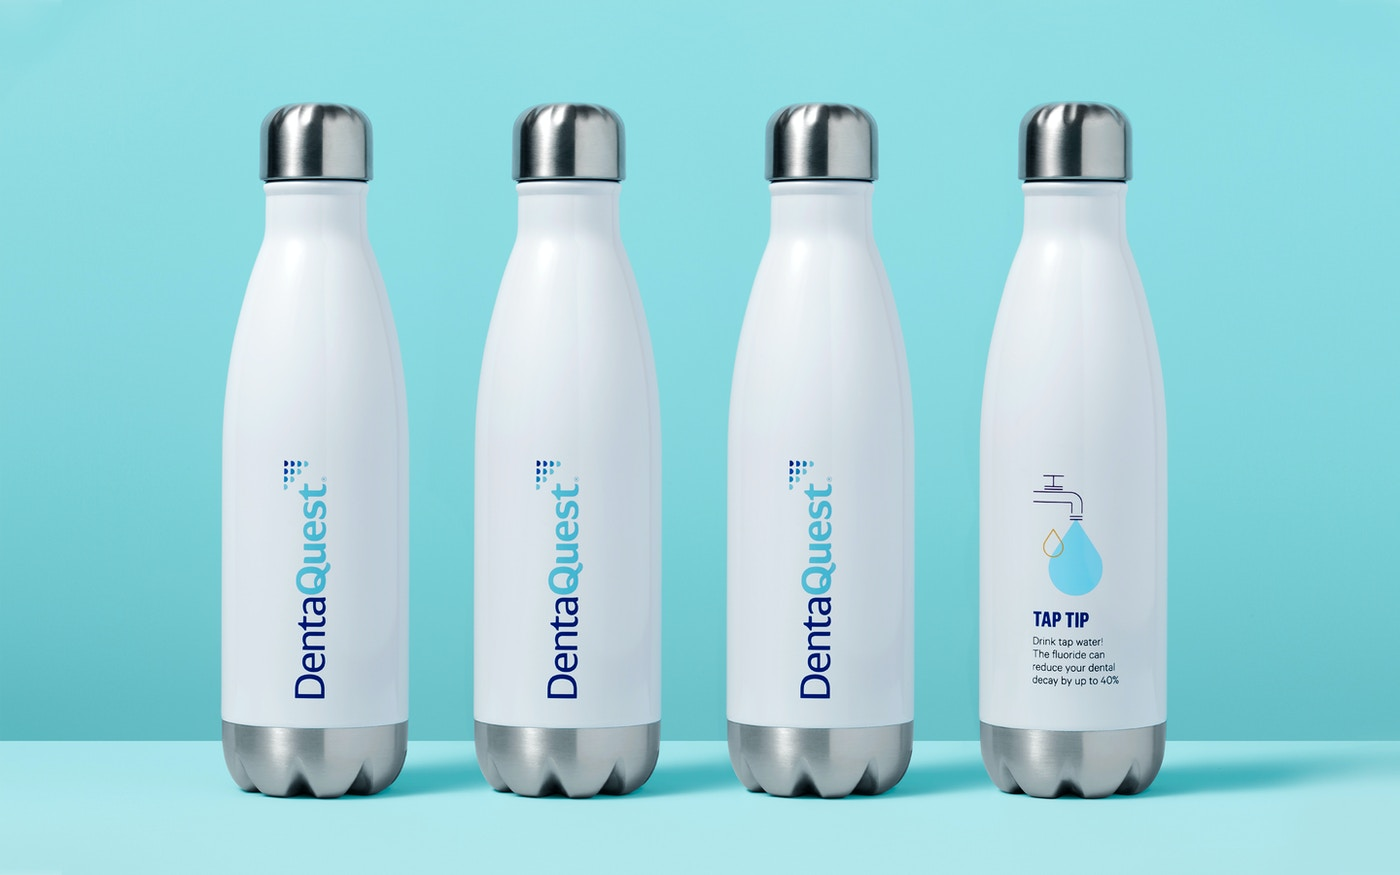 DentaQuest water bottles